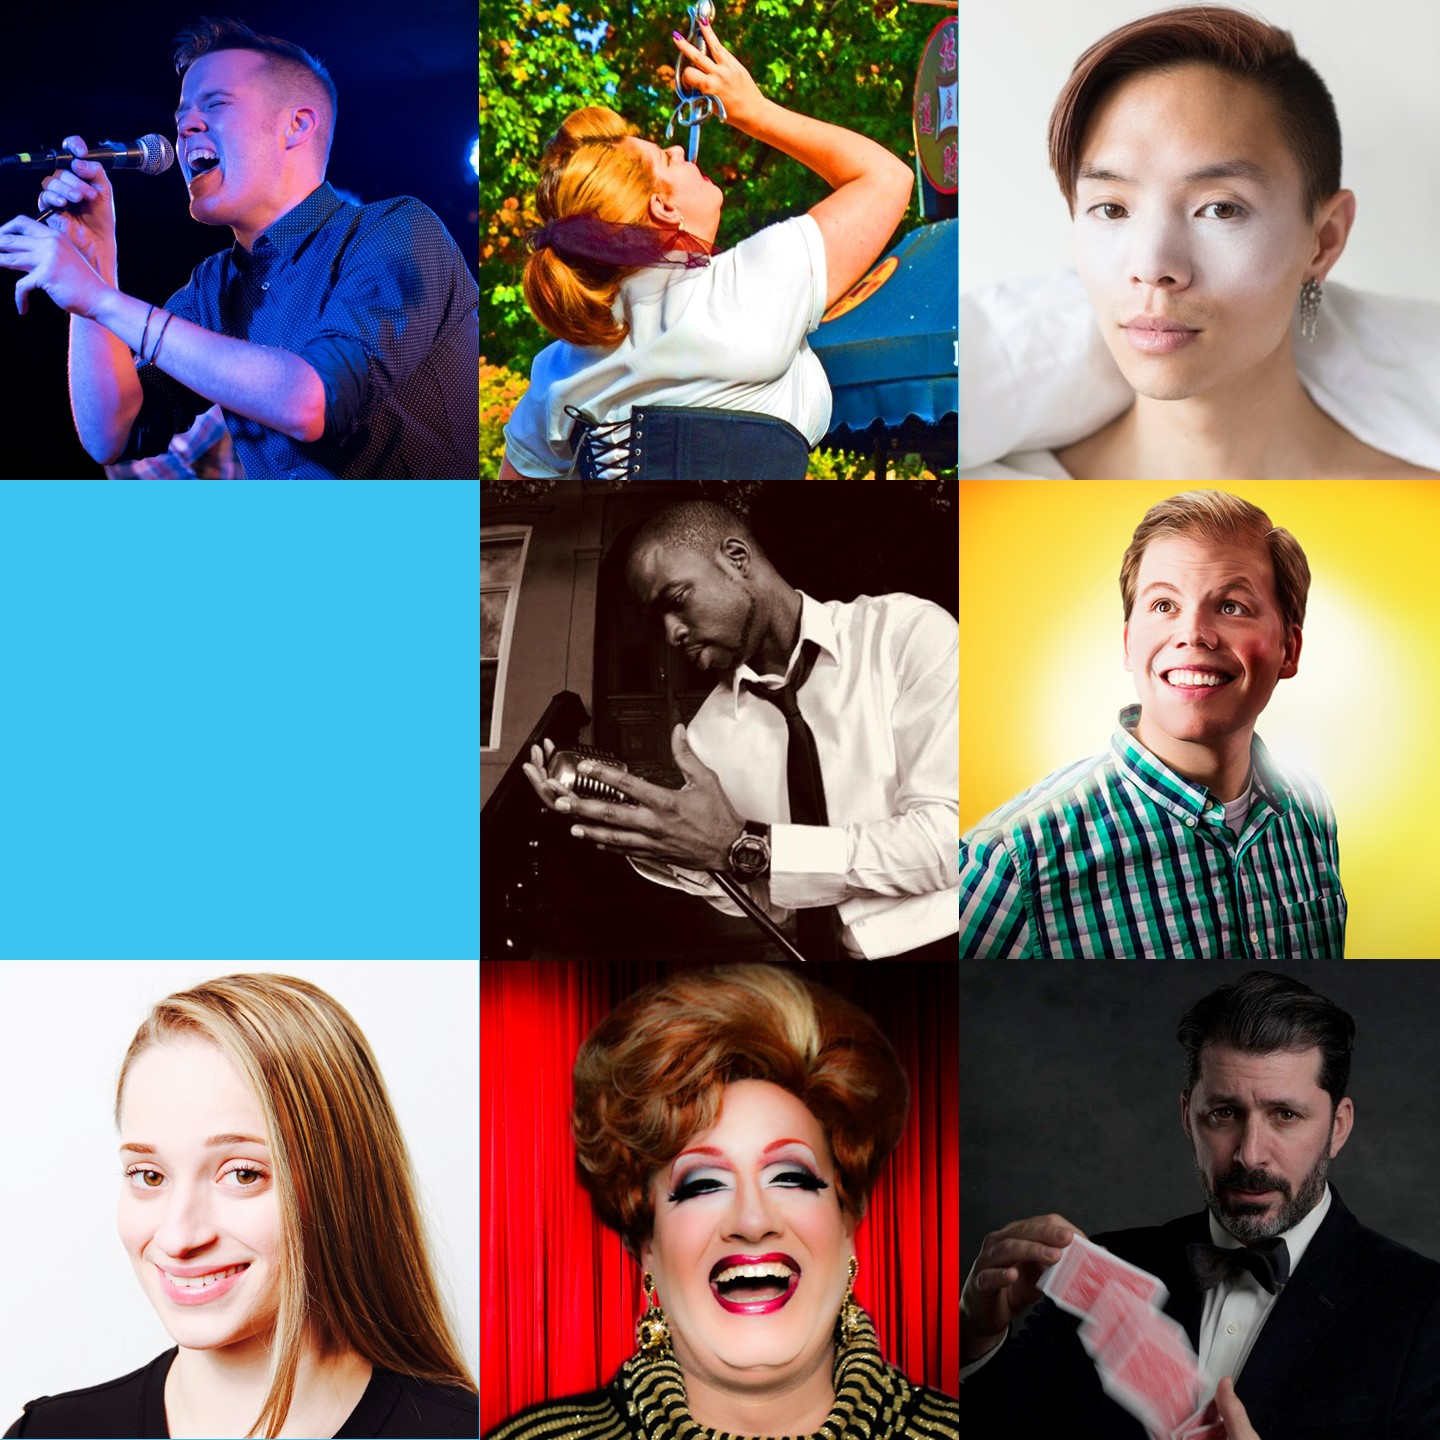 November 16 & 17, 2018   Hosted by:  November 16 -  Jeff Hiller  November 17 -  Dave Lester  FEATURING: Goldenchild (Cosmic Country) Vodka Stinger (Brassy Drag Cabaret) Jon Wan (Queer Comedy) The Great Dubini (Wry Up-Close Magic) Kit Kat (Flexn Dance) The Lady Aye (Sideshow Marvels)